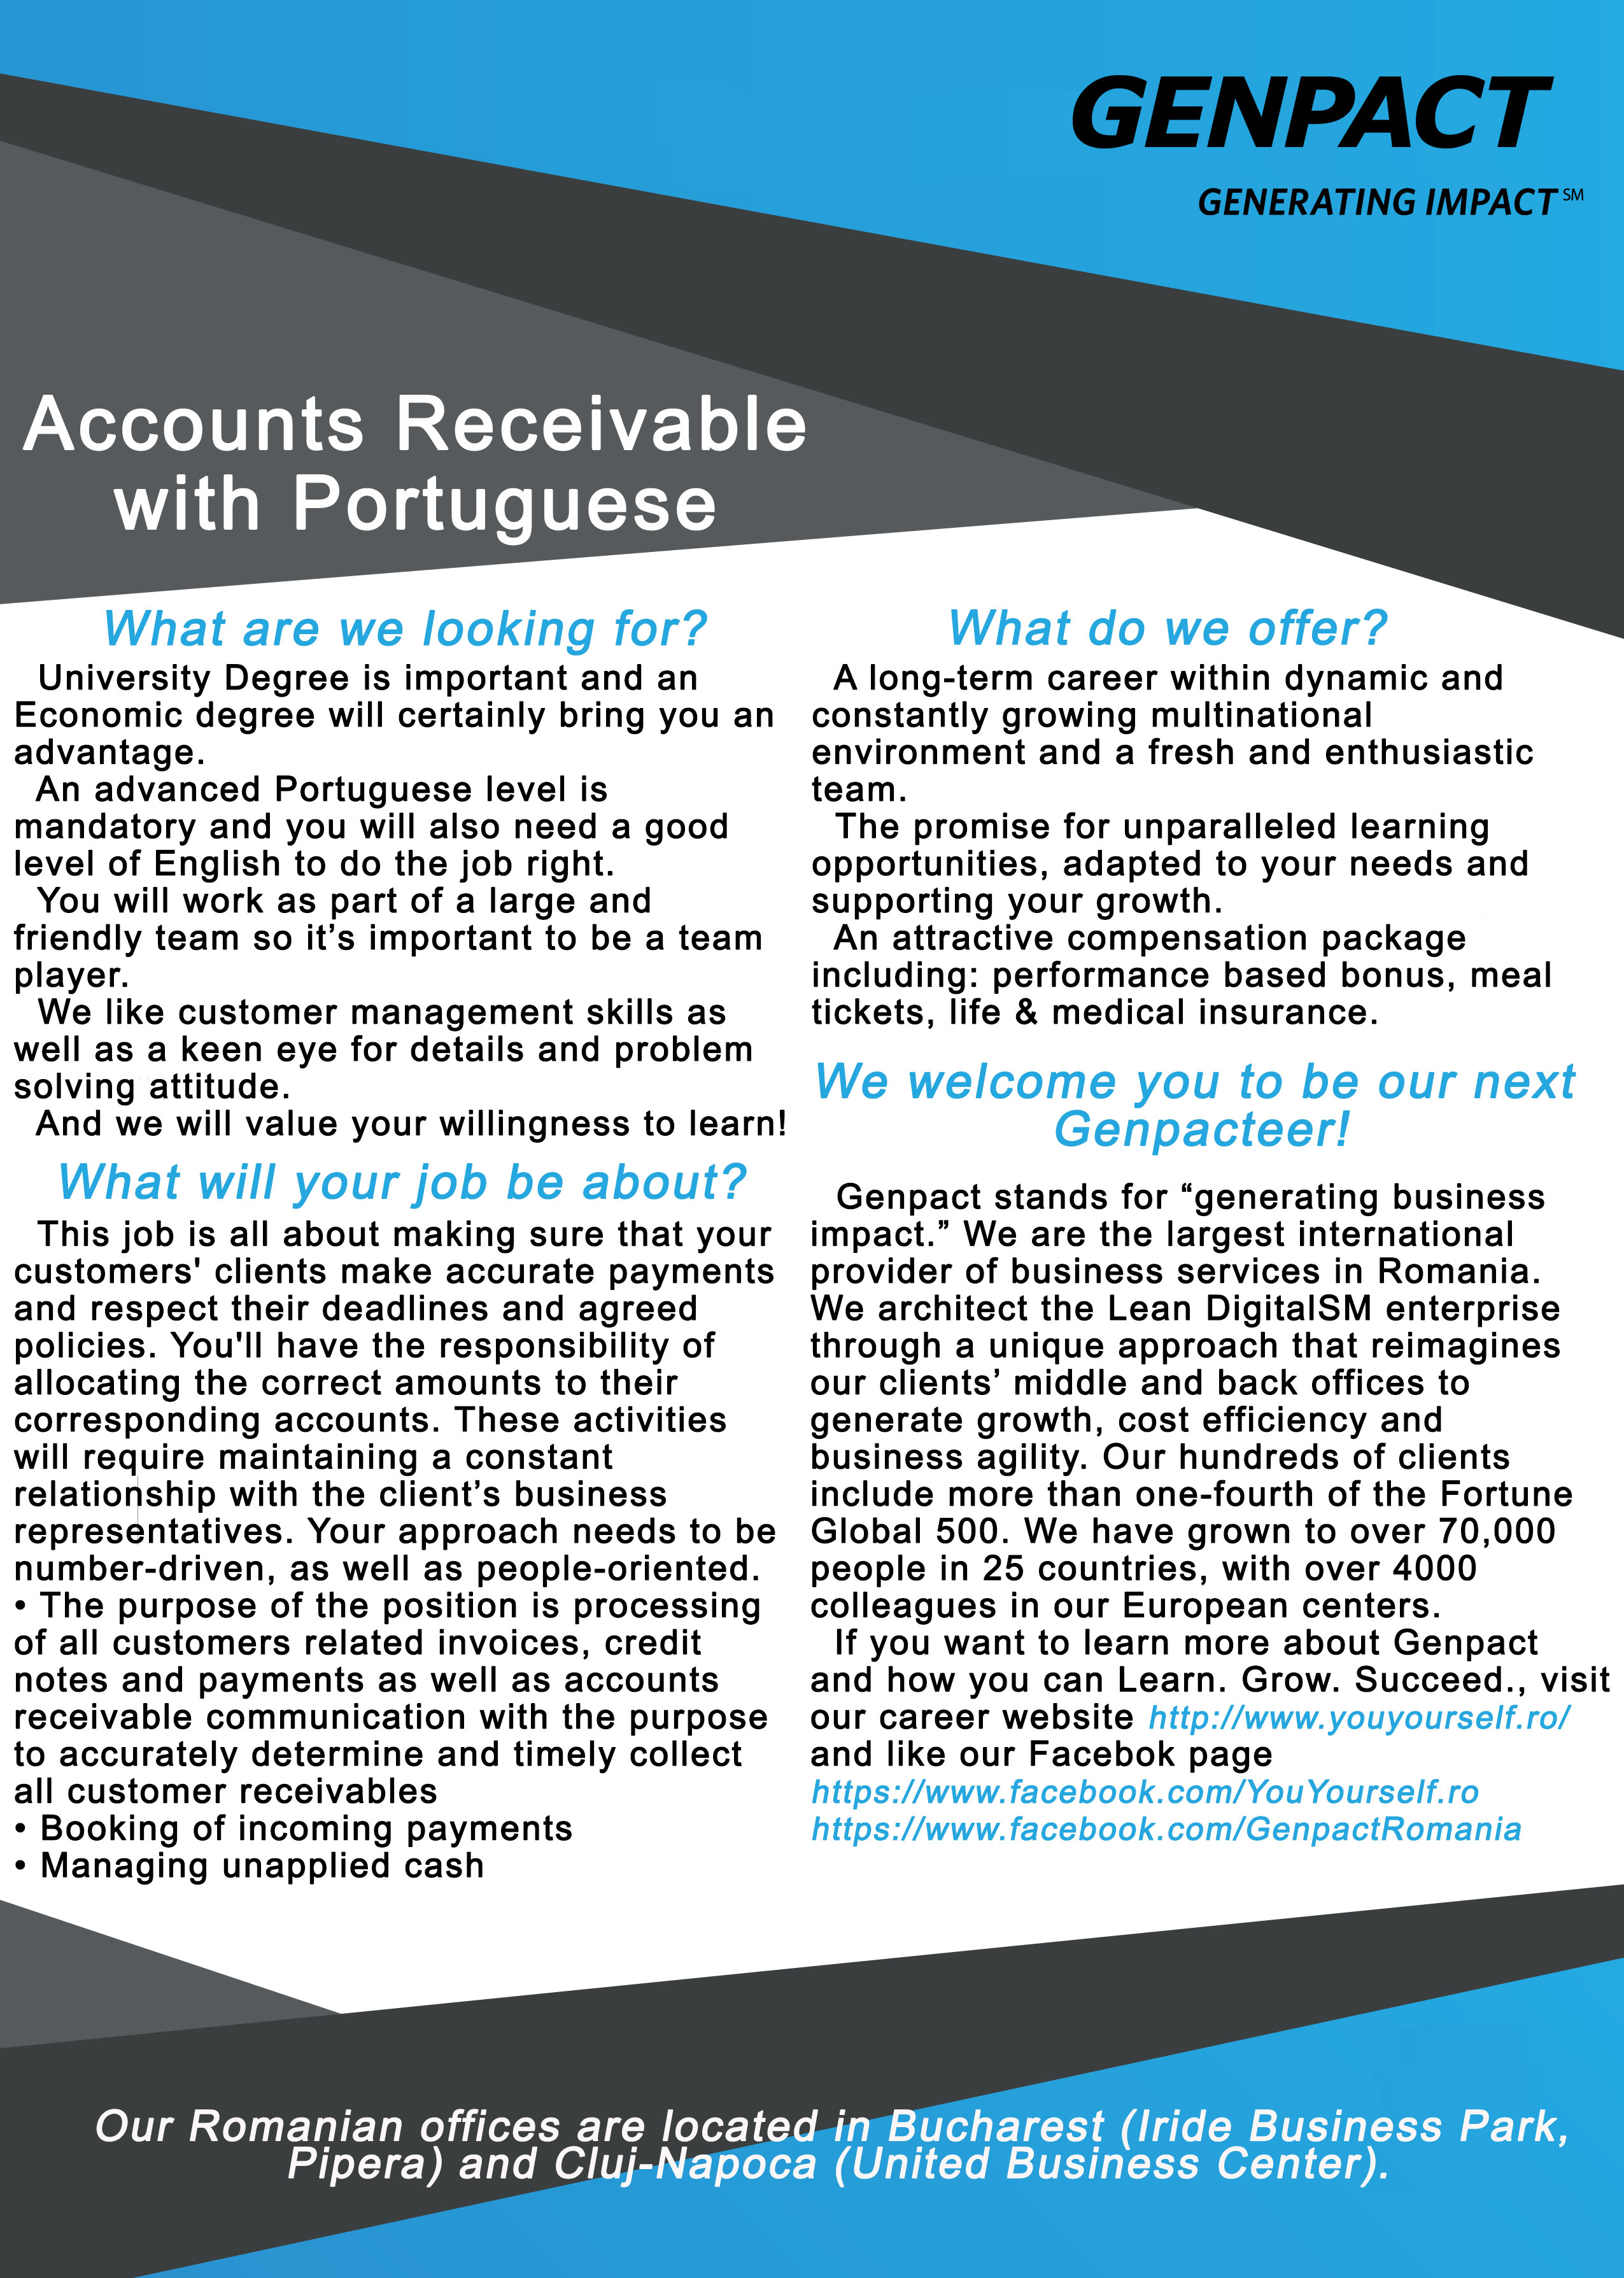 Accounts Receivable with Portuguese